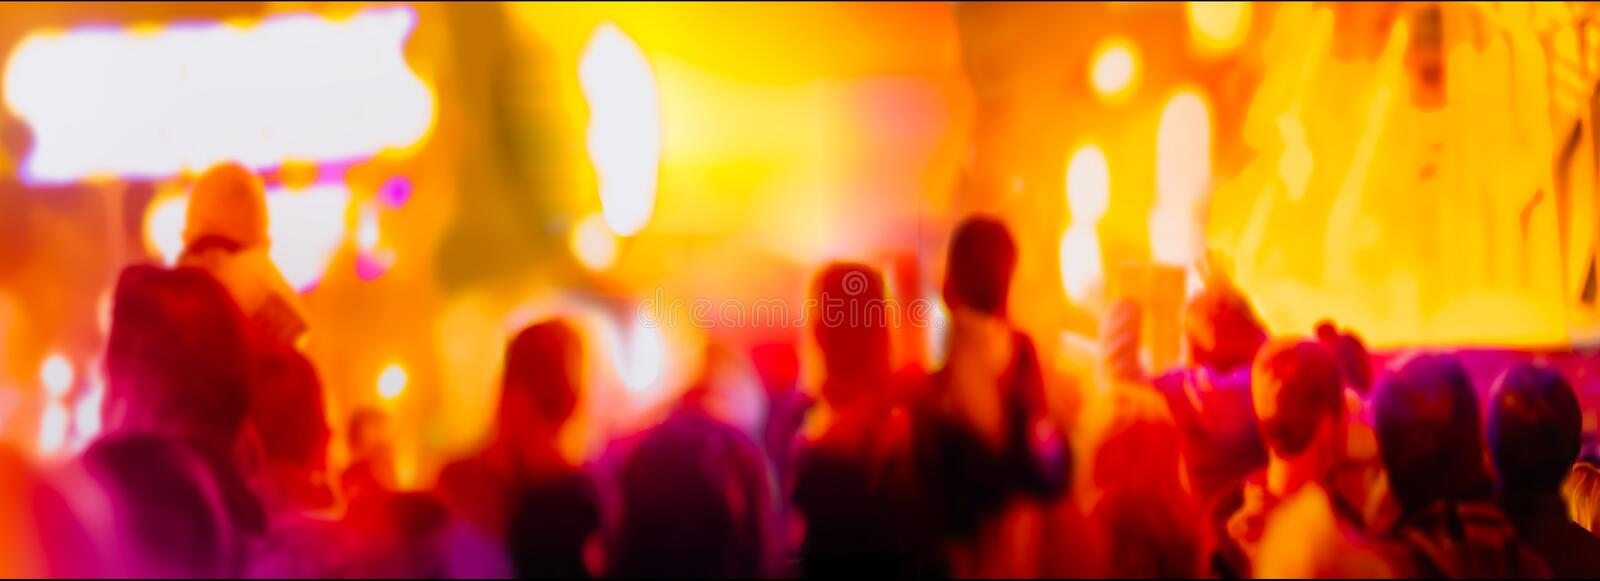 Abstract blurred people at night festival on street stock images